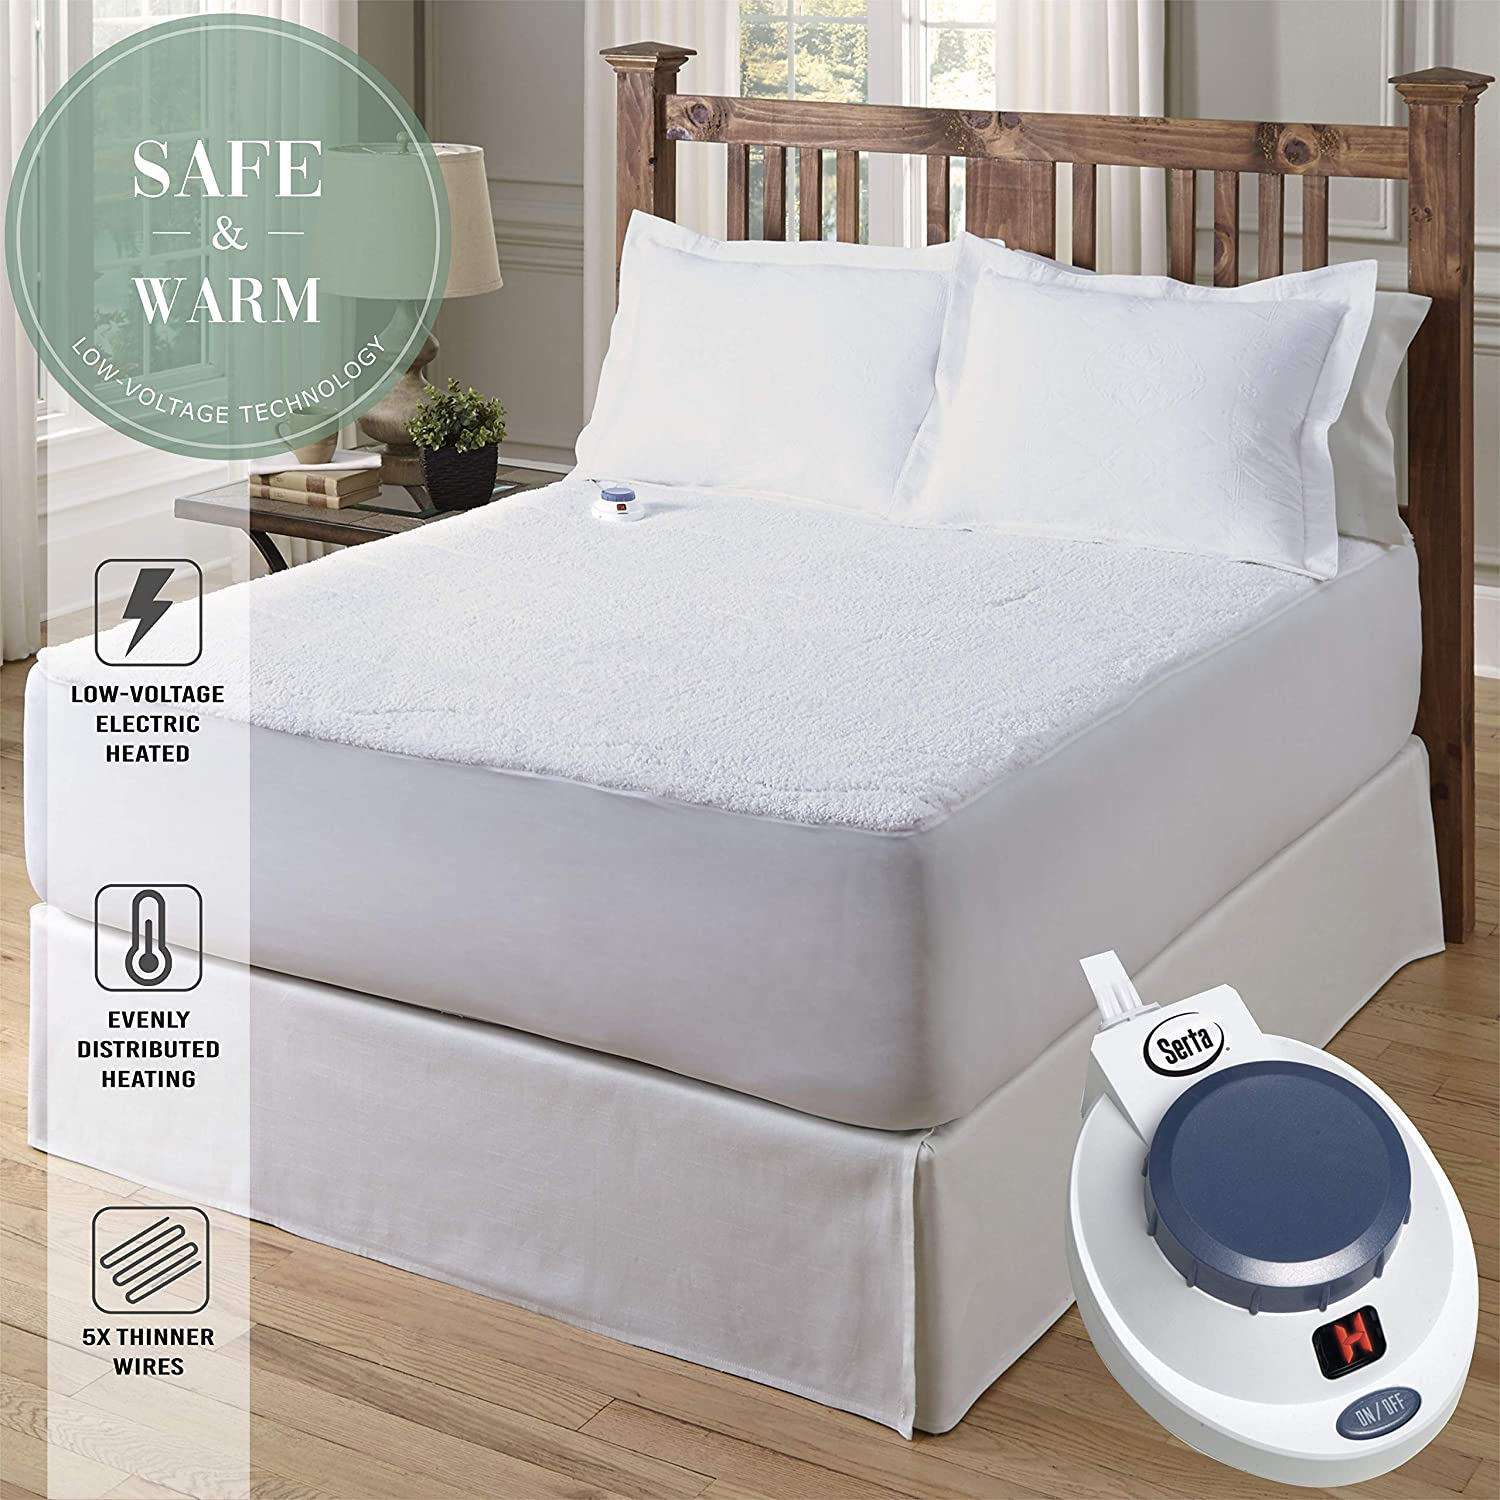 Amazon.com: Serta | Luxurious Sherpa Heated Electric Mattress Pad with Safe \u0026 Warm Low-Voltage Technology (King): Home Kitchen